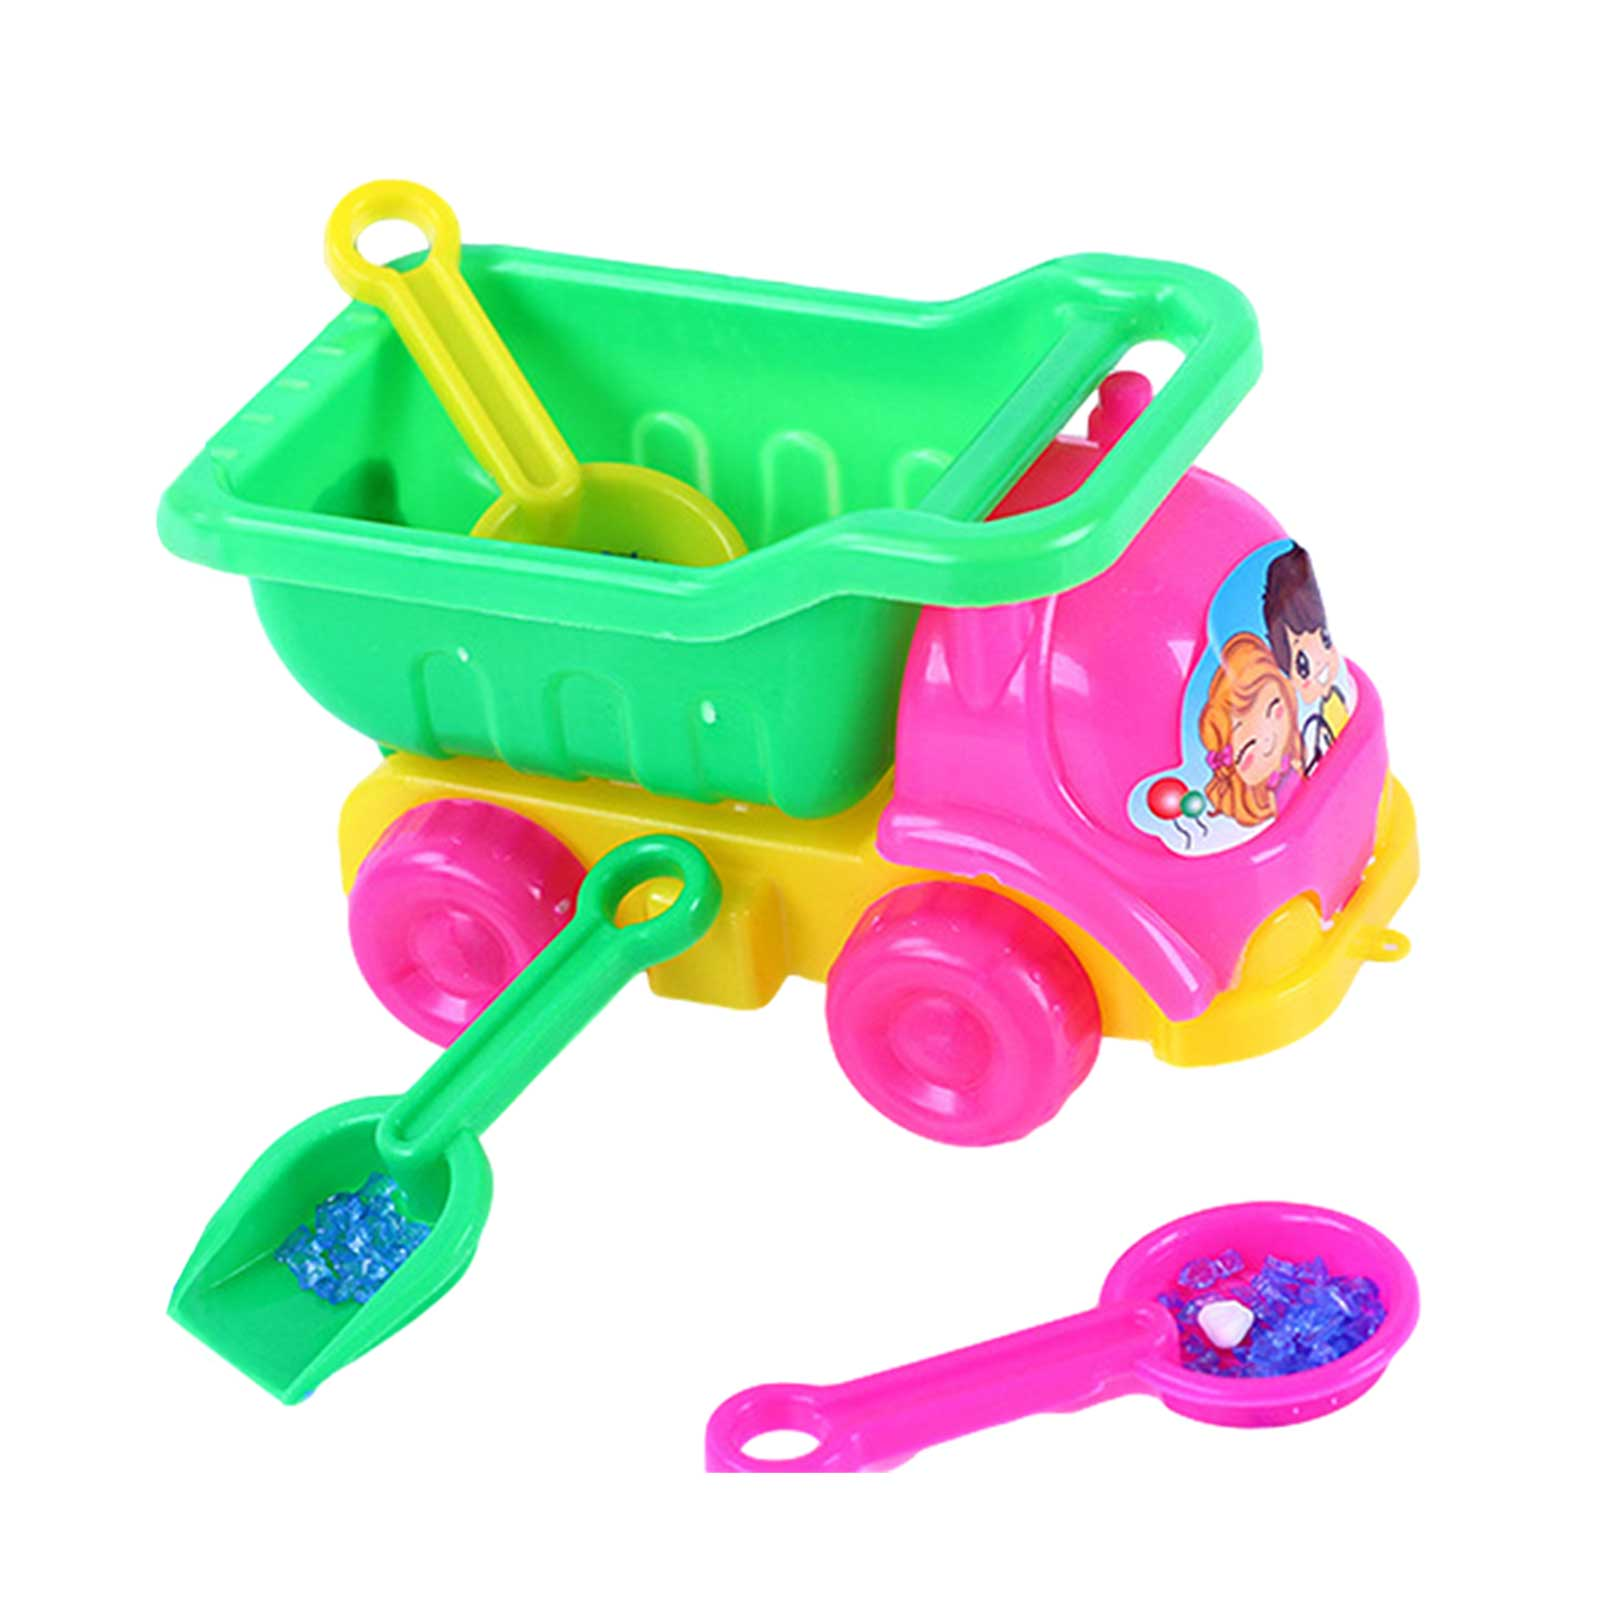 Mini Beach Dump Truck Kids Sand Toy Truck Construction Vehicle Toy Children's Dredging Tool For Boys And Girls Outdoor Gifts